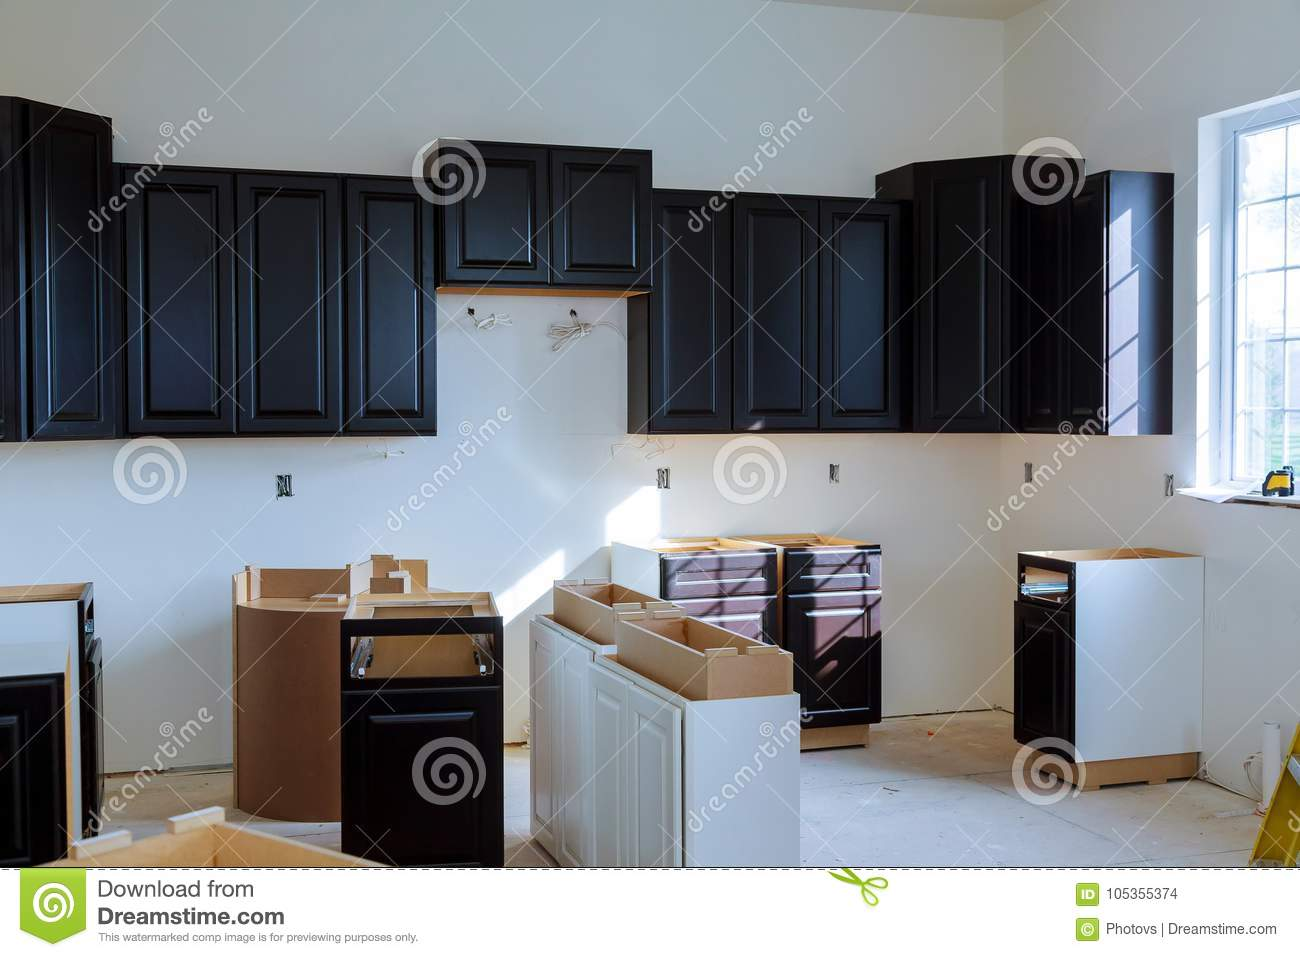 Blind Corner Cabinet Island Drawers And Counter Cabinets